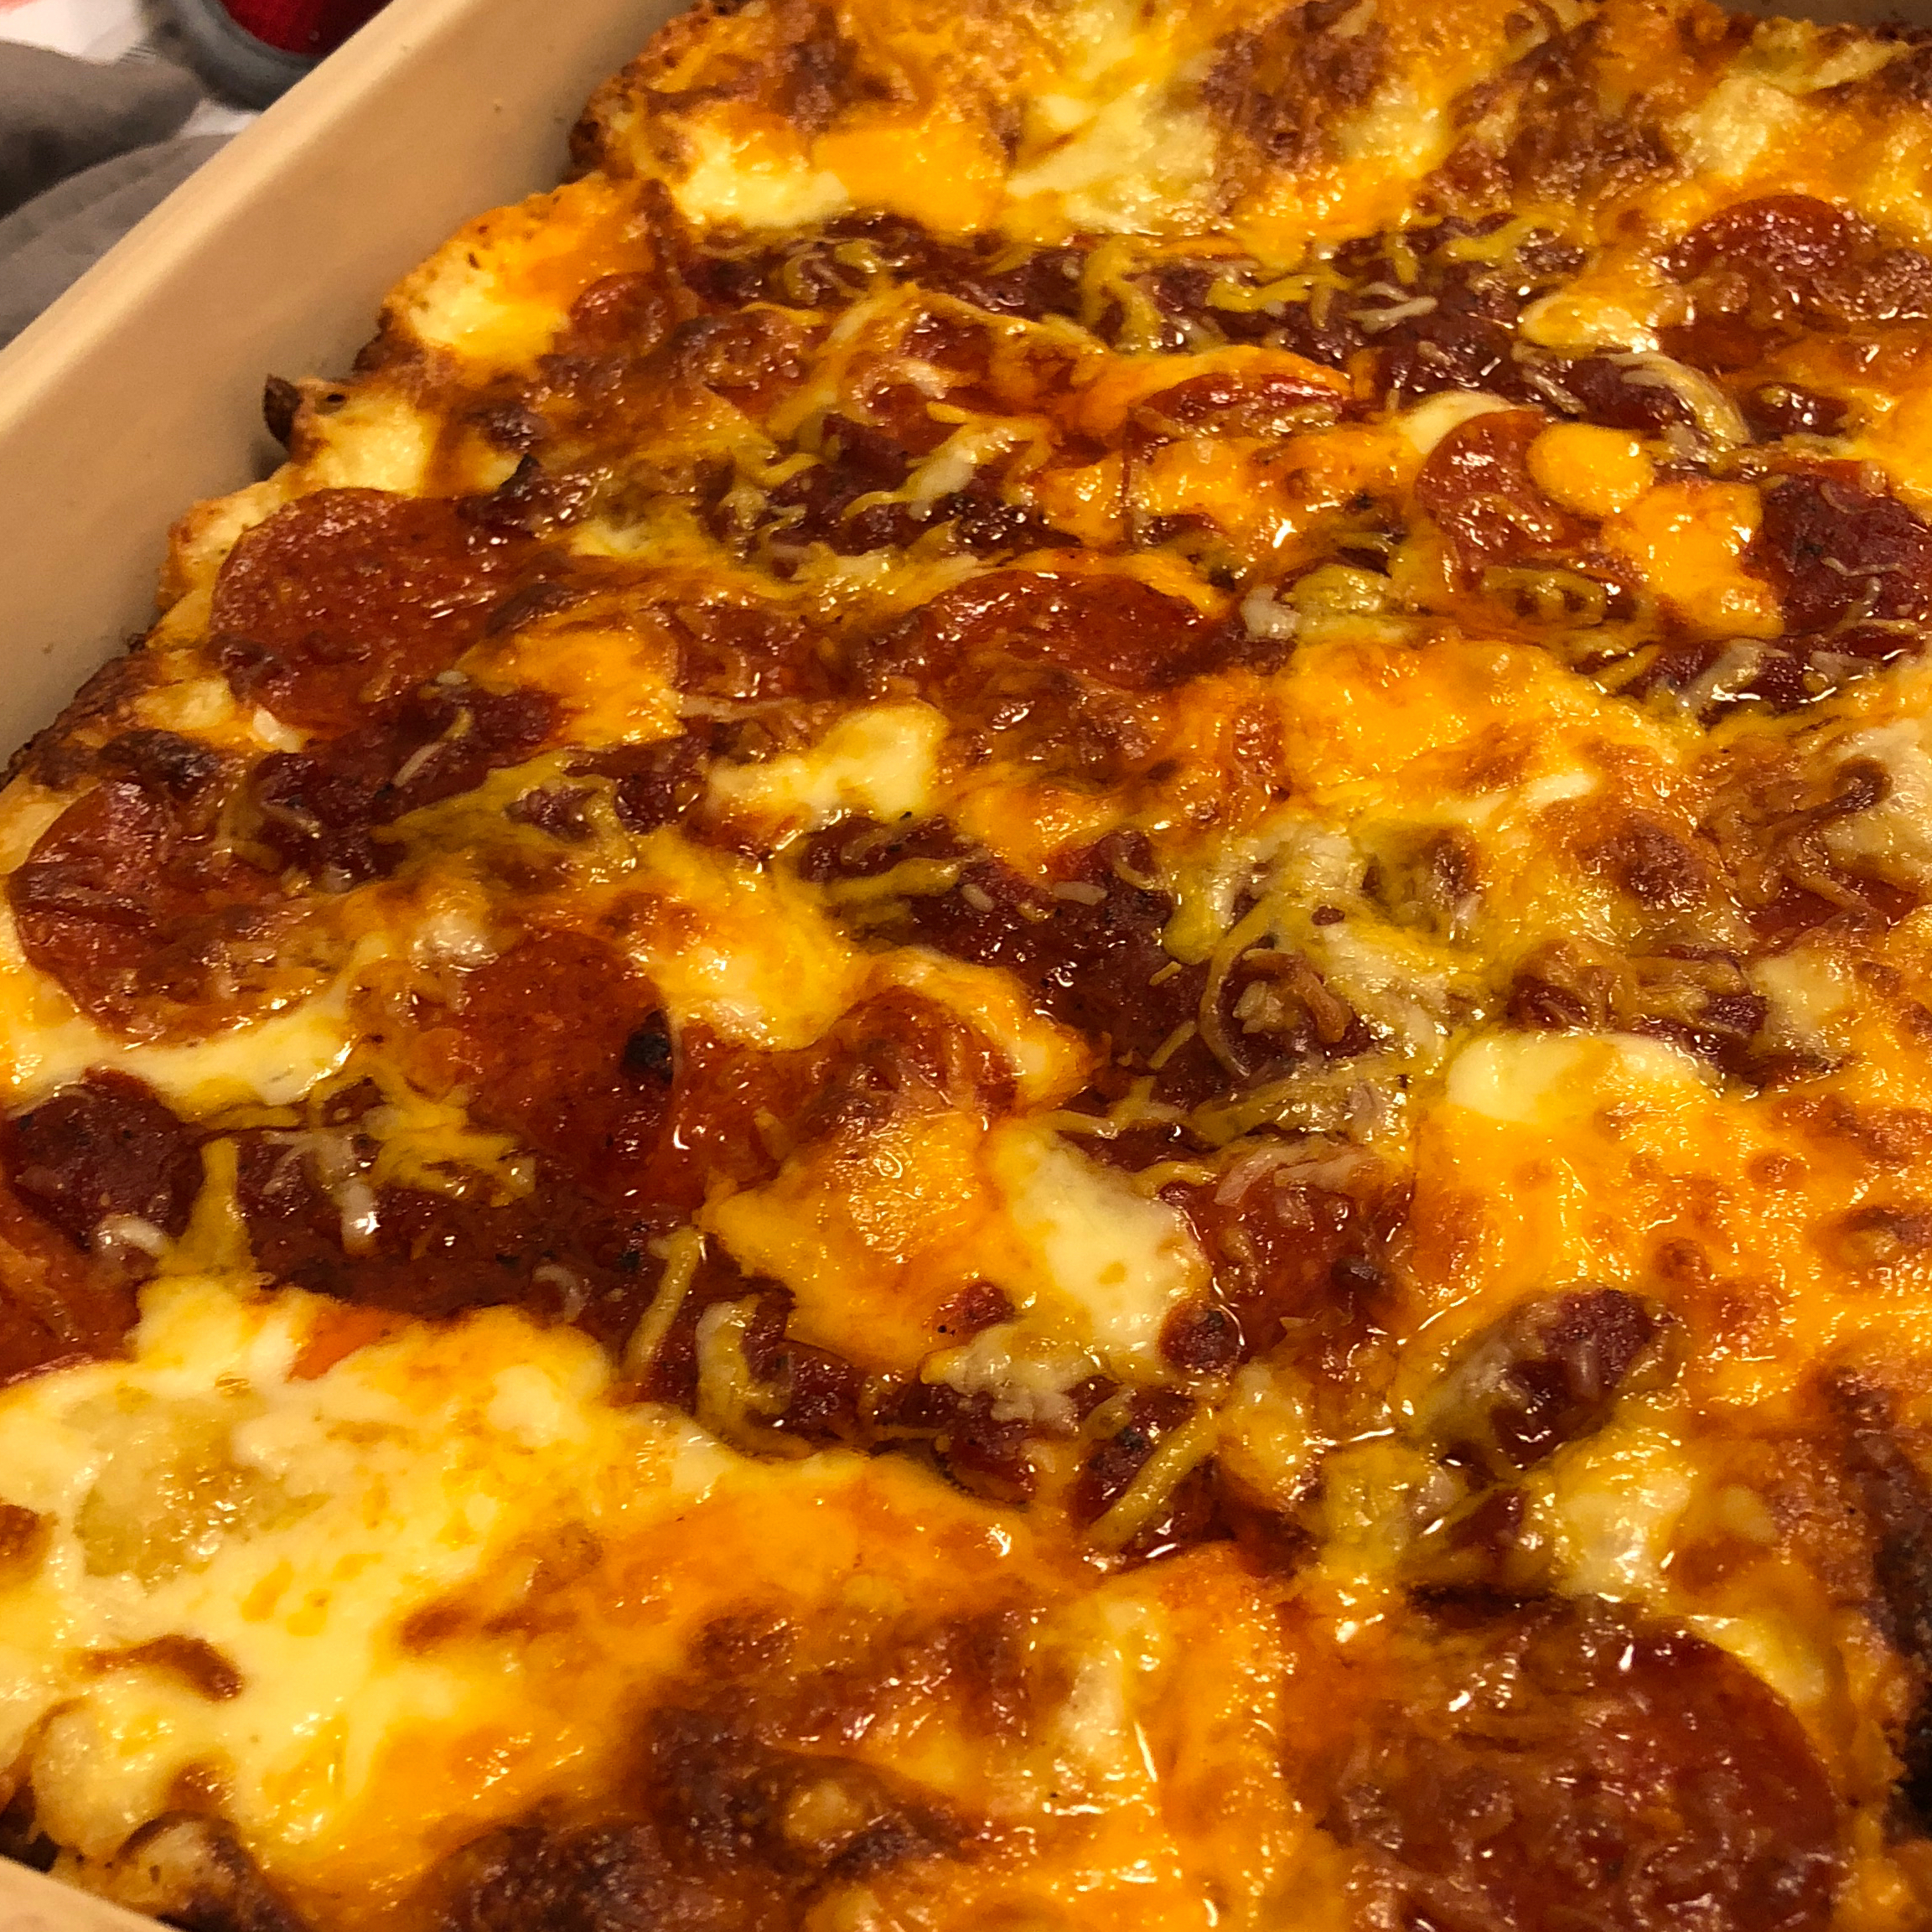 Detroit-Style Pizza Dark Lord of the Pan